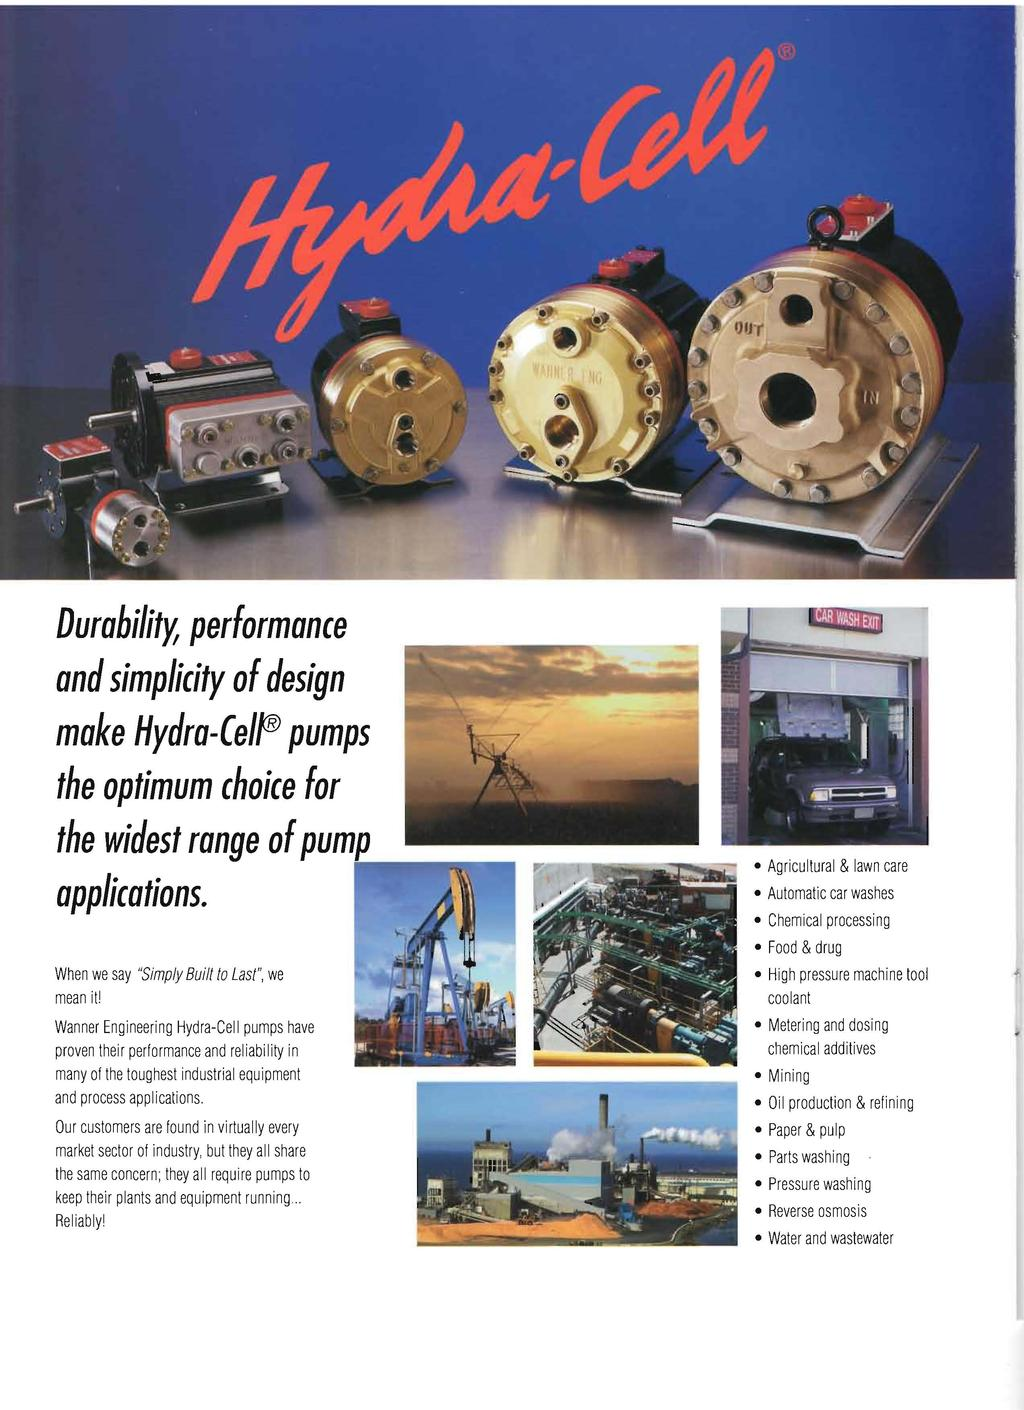 "Durability, performance and simplicity of design make Hydra-CelfB pumps the optimum choice for the widest range of pum applications. When we say ""Simply Built to Last"", we mean it!"